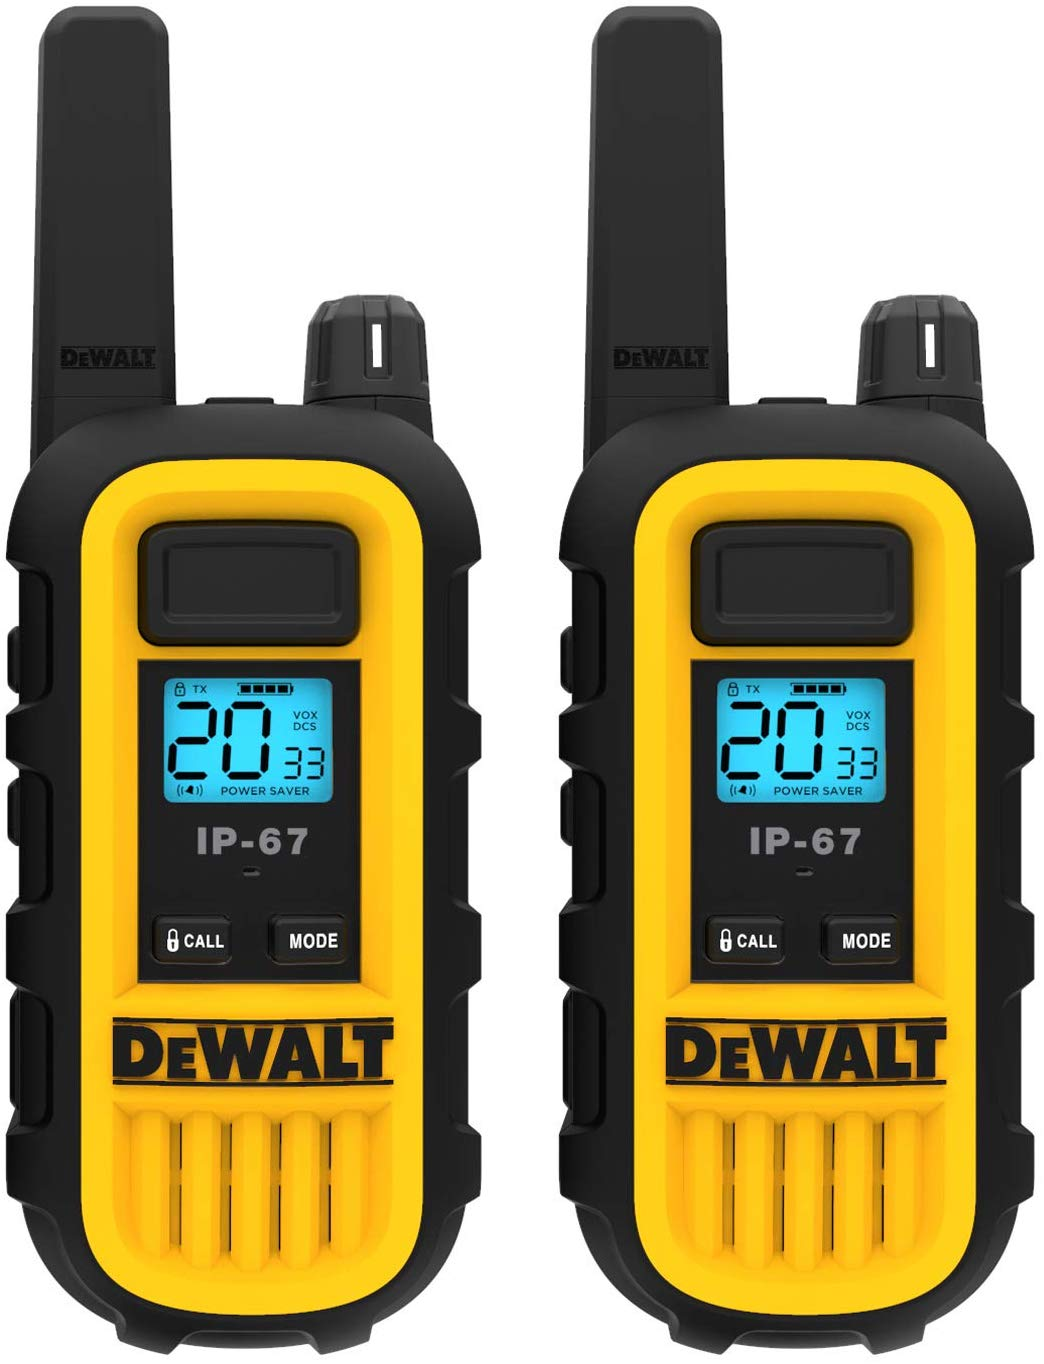 DEWALT DXFRS300 1 Watt Heavy Duty Walkie Talkie